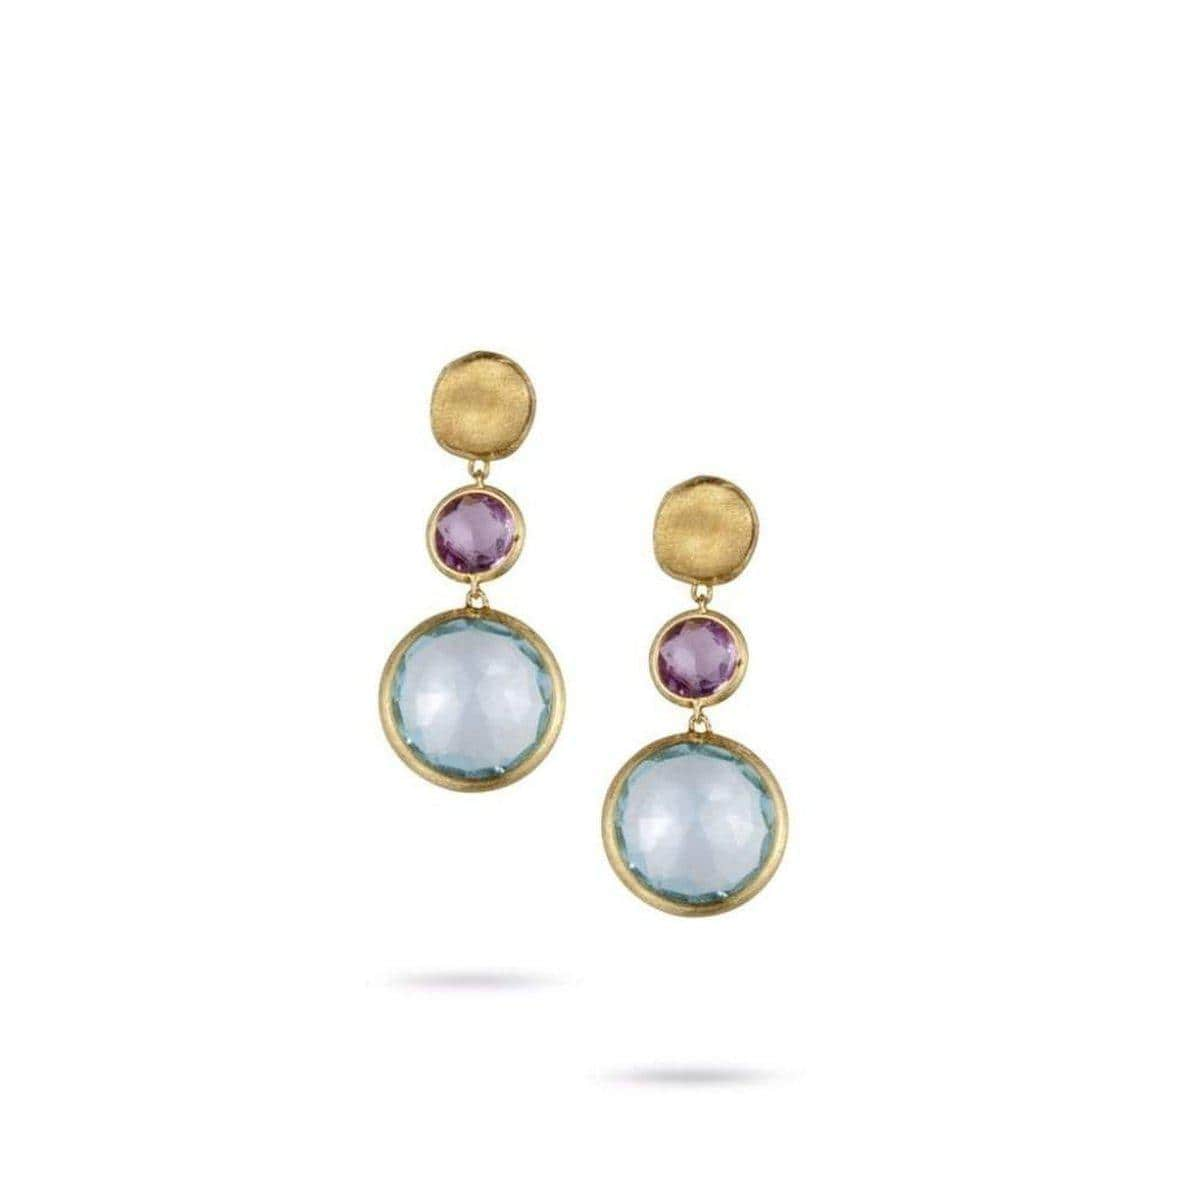 18K Jaipur Amethyst & Blue Topaz Earrings - OB900 A MIX52 Y